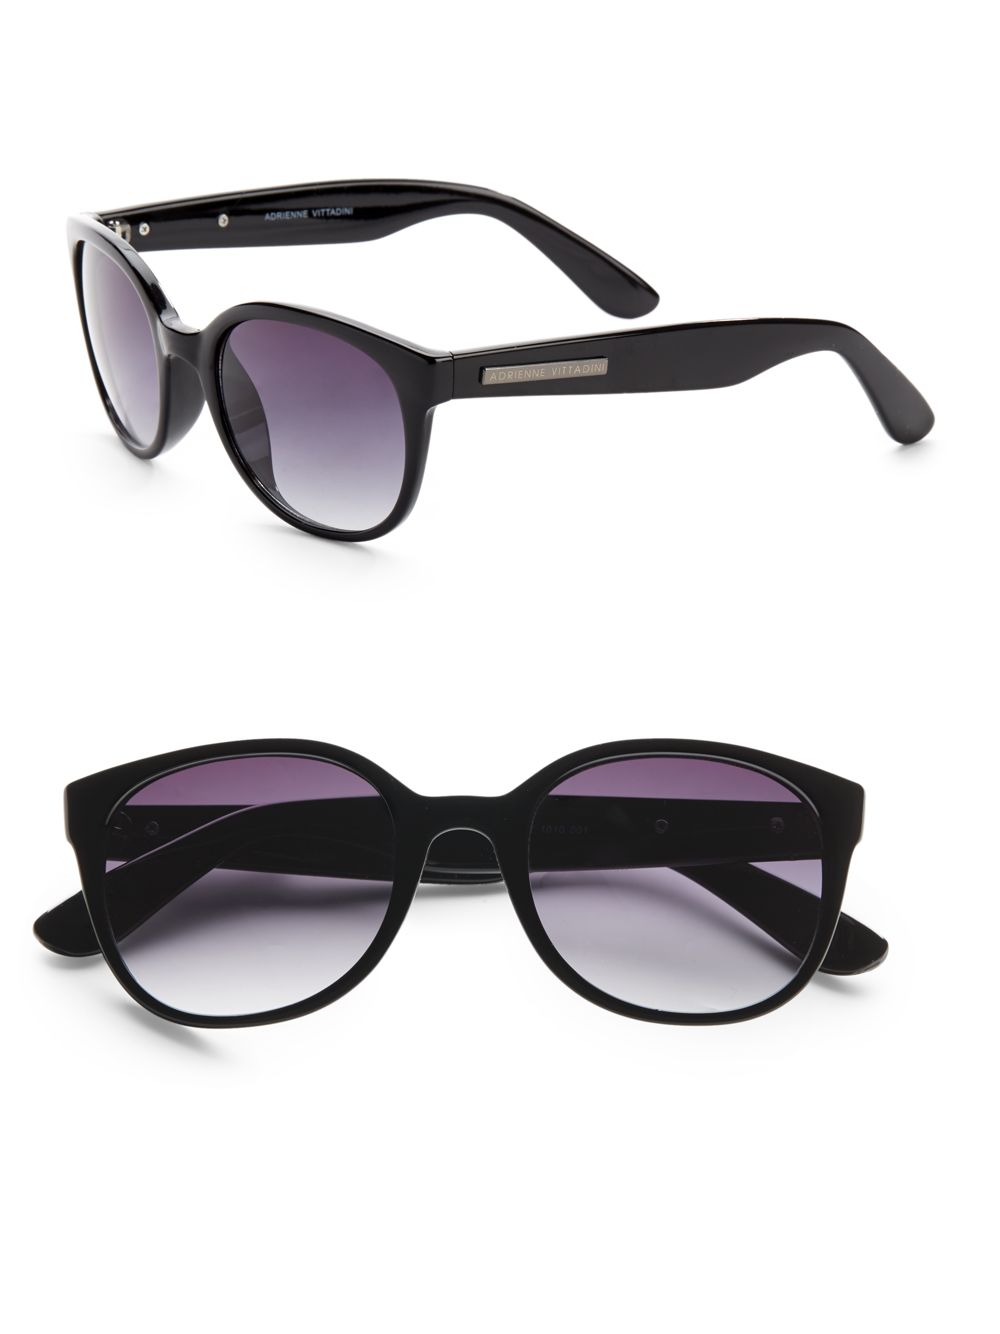 5e40c9fe26 Lyst - Adrienne Vittadini Rounded Cats-eye Sunglasses in Black